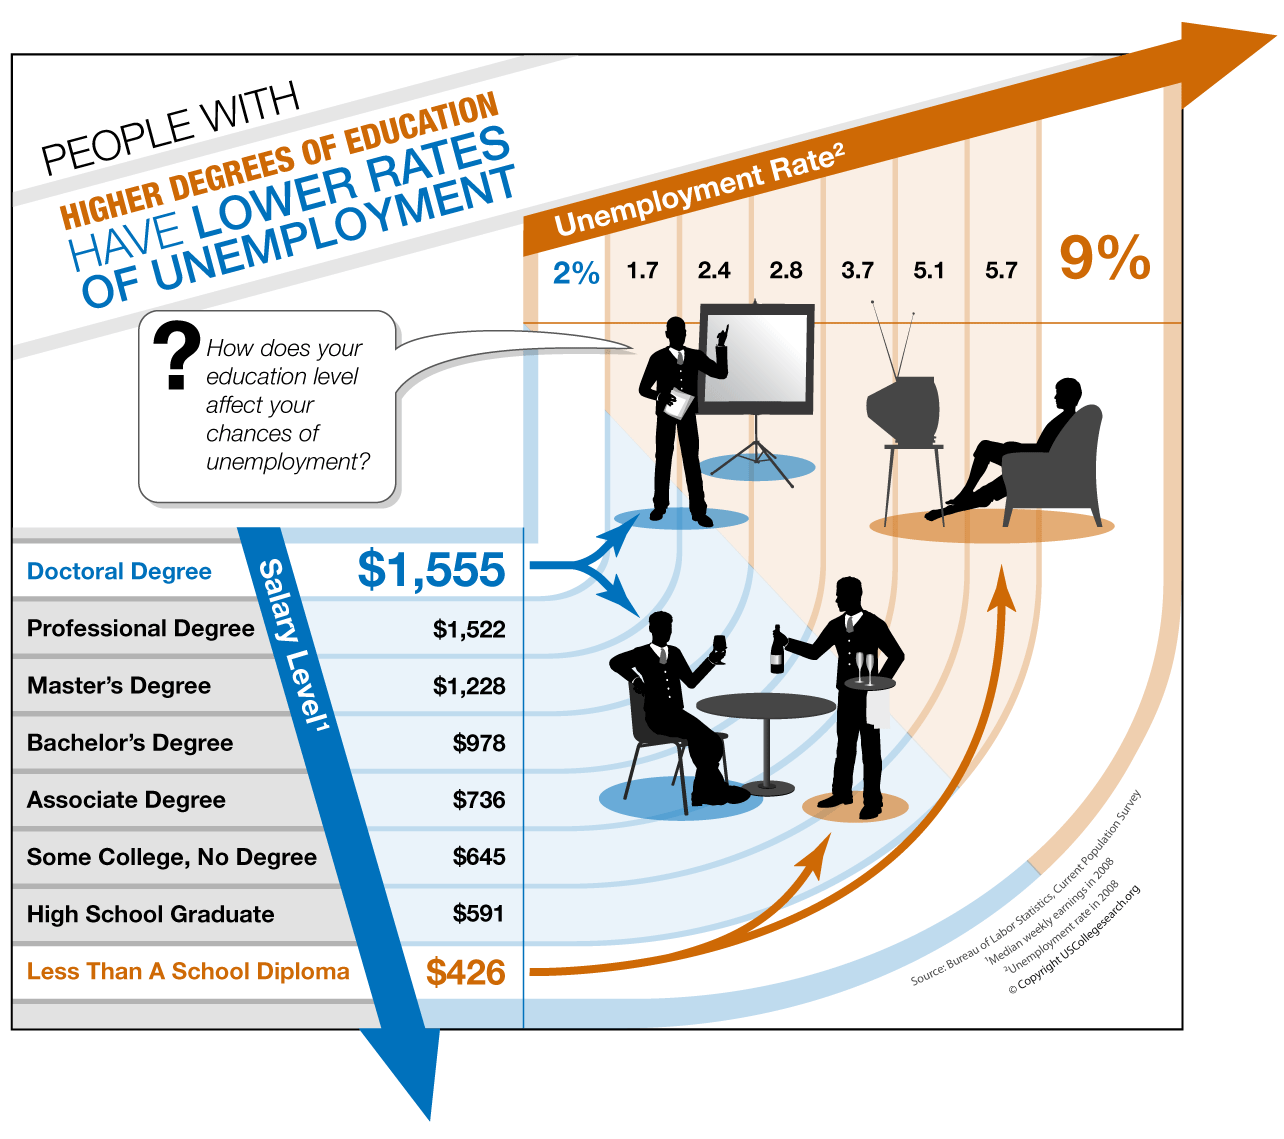 People With Higher Degrees of Education Have Lower Rates Of Unemployment - Online Education Infographic